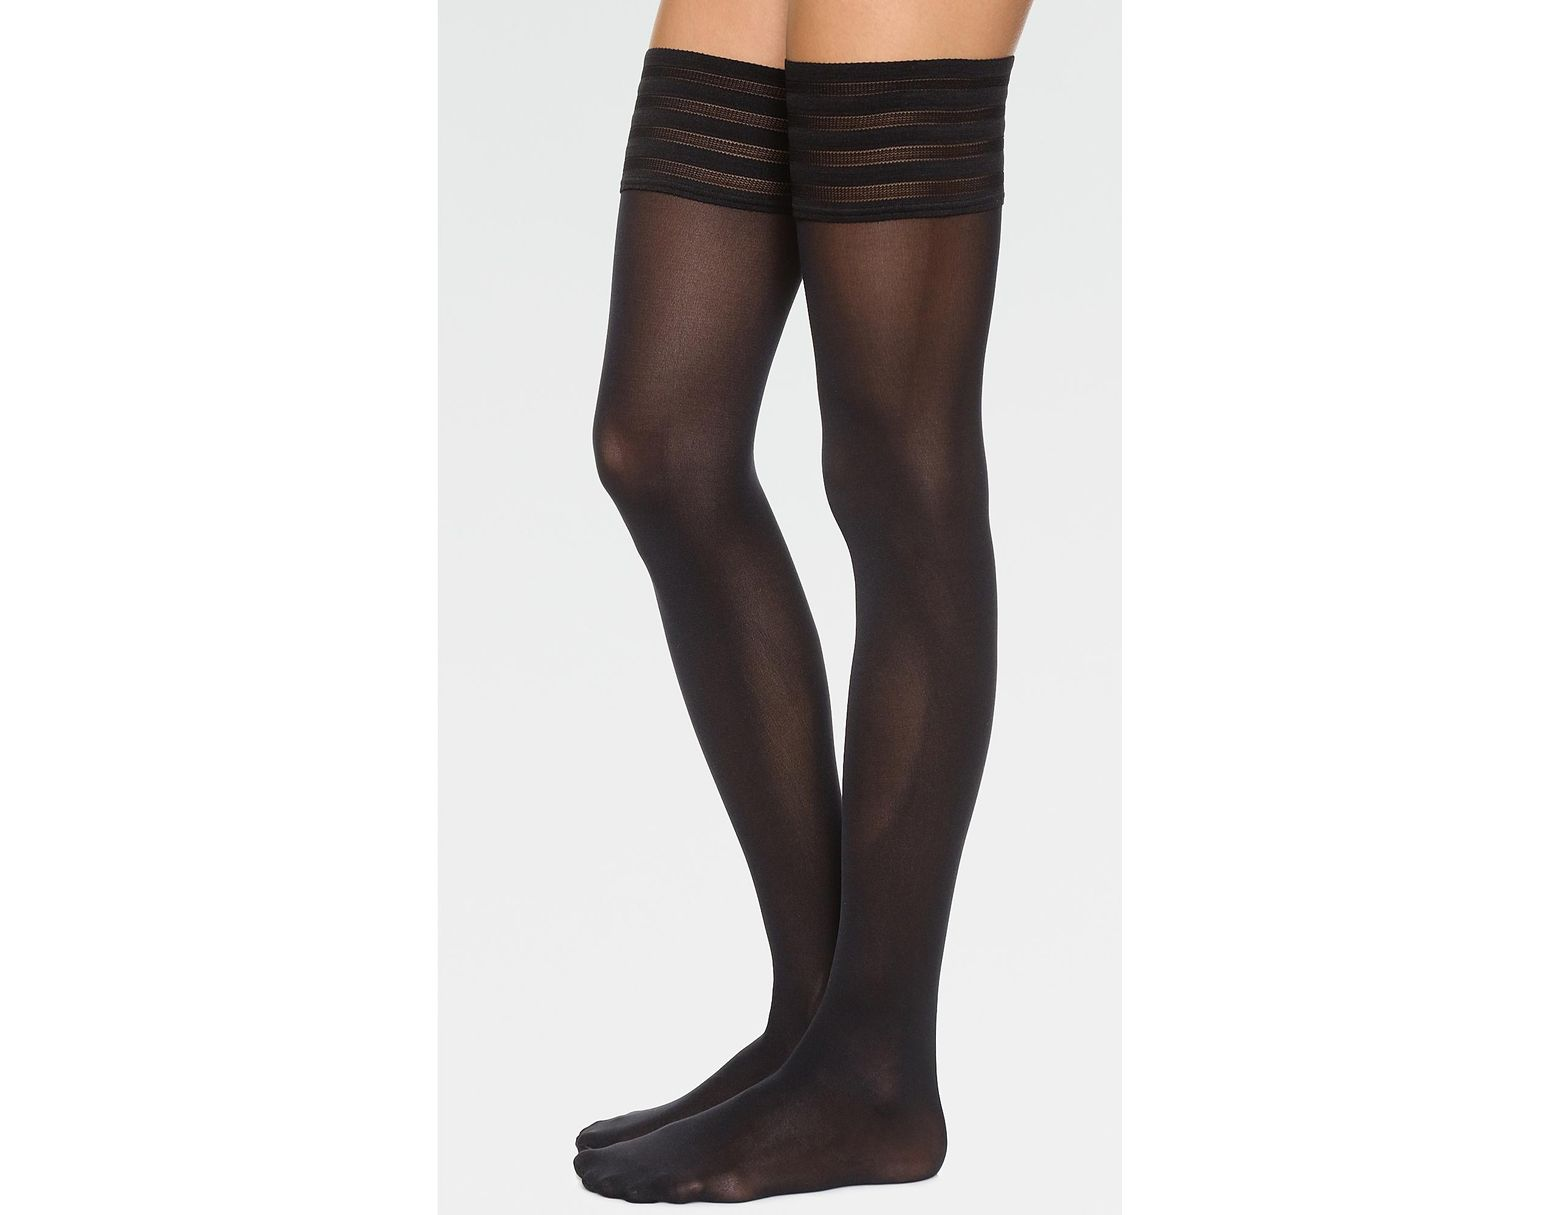 a2c24a8c7acd3 Wolford Velvet De Luxe 50 Stay Up Tights in Black - Lyst